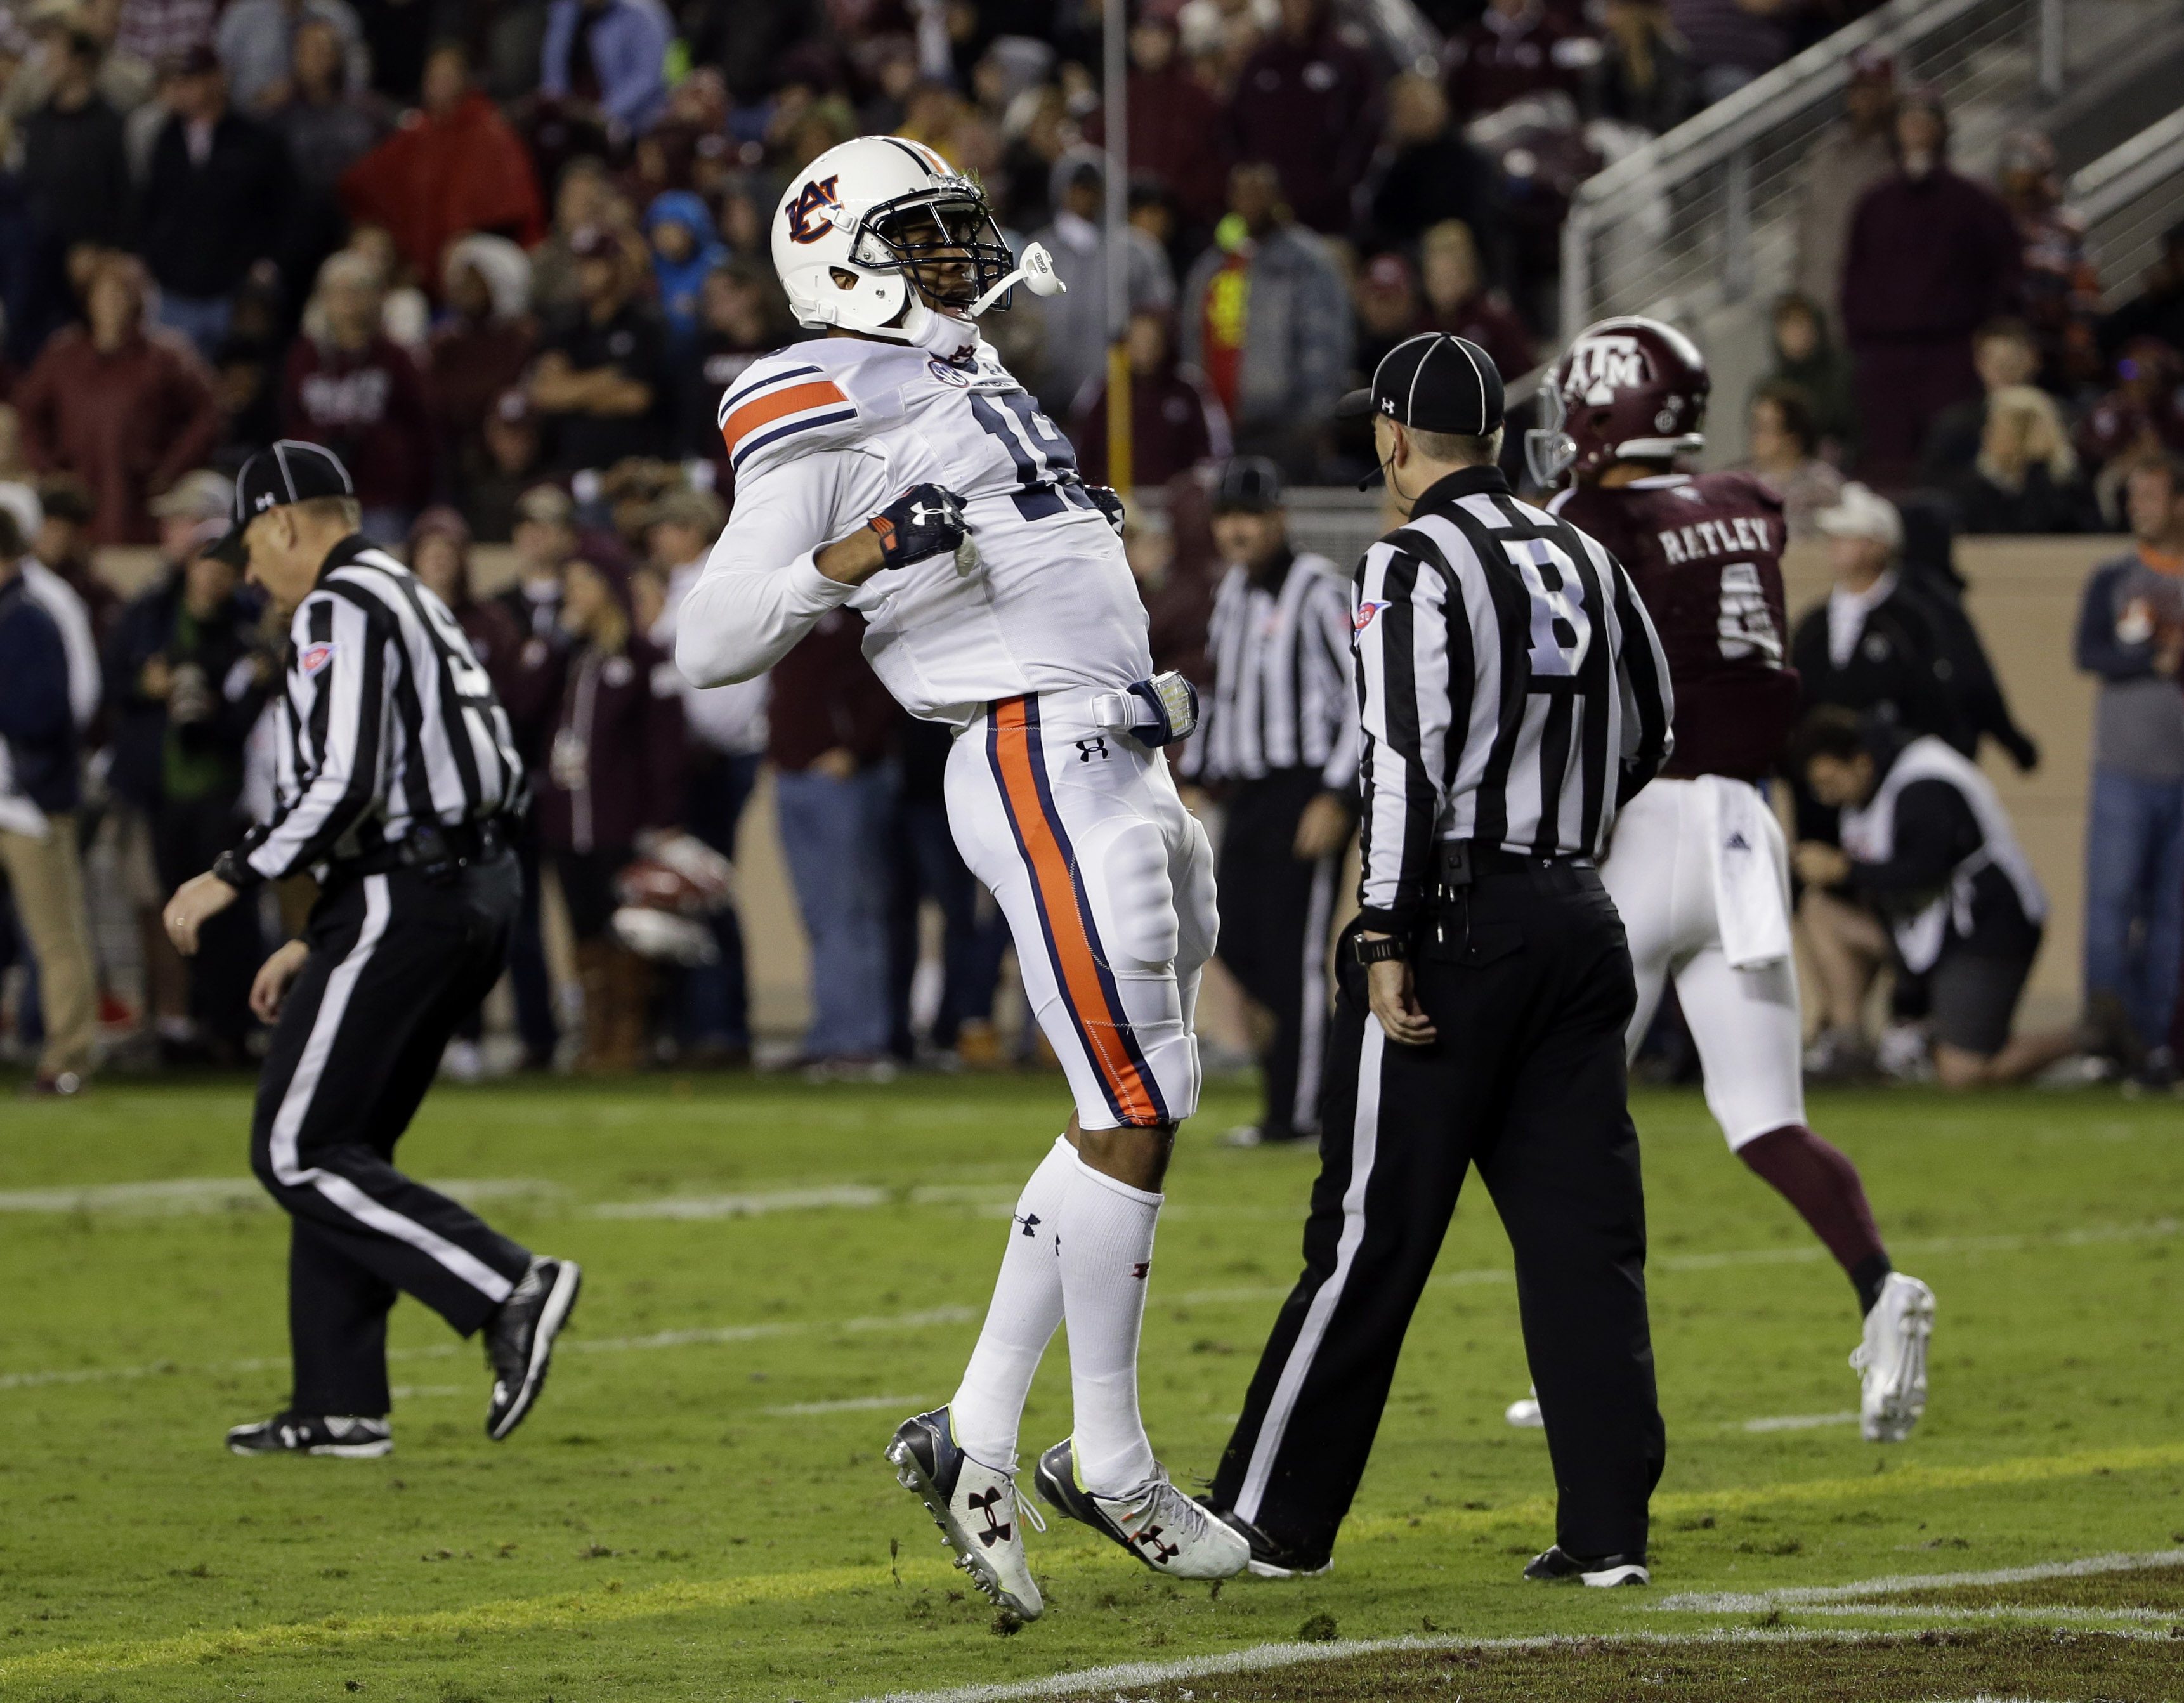 Auburn defensive back Carlton Davis celebrates after intercepting a pass in the end zone during the first quarter of an NCAA college football game against Texas A&M, Saturday, Nov. 7, 2015, in College Station, Texas. (AP Photo/David J. Phillip)